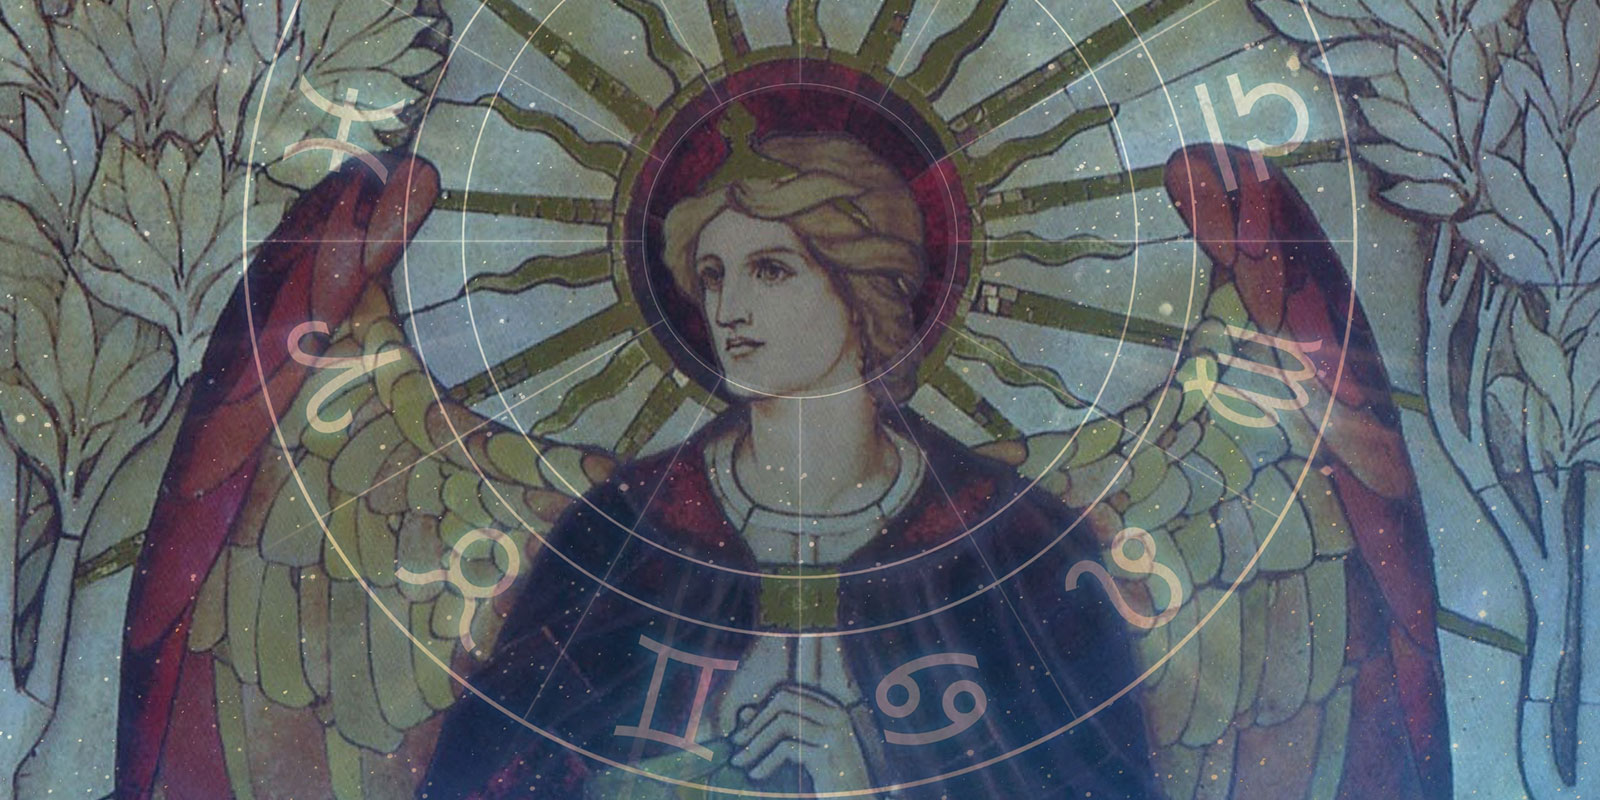 Astrology and Archangels